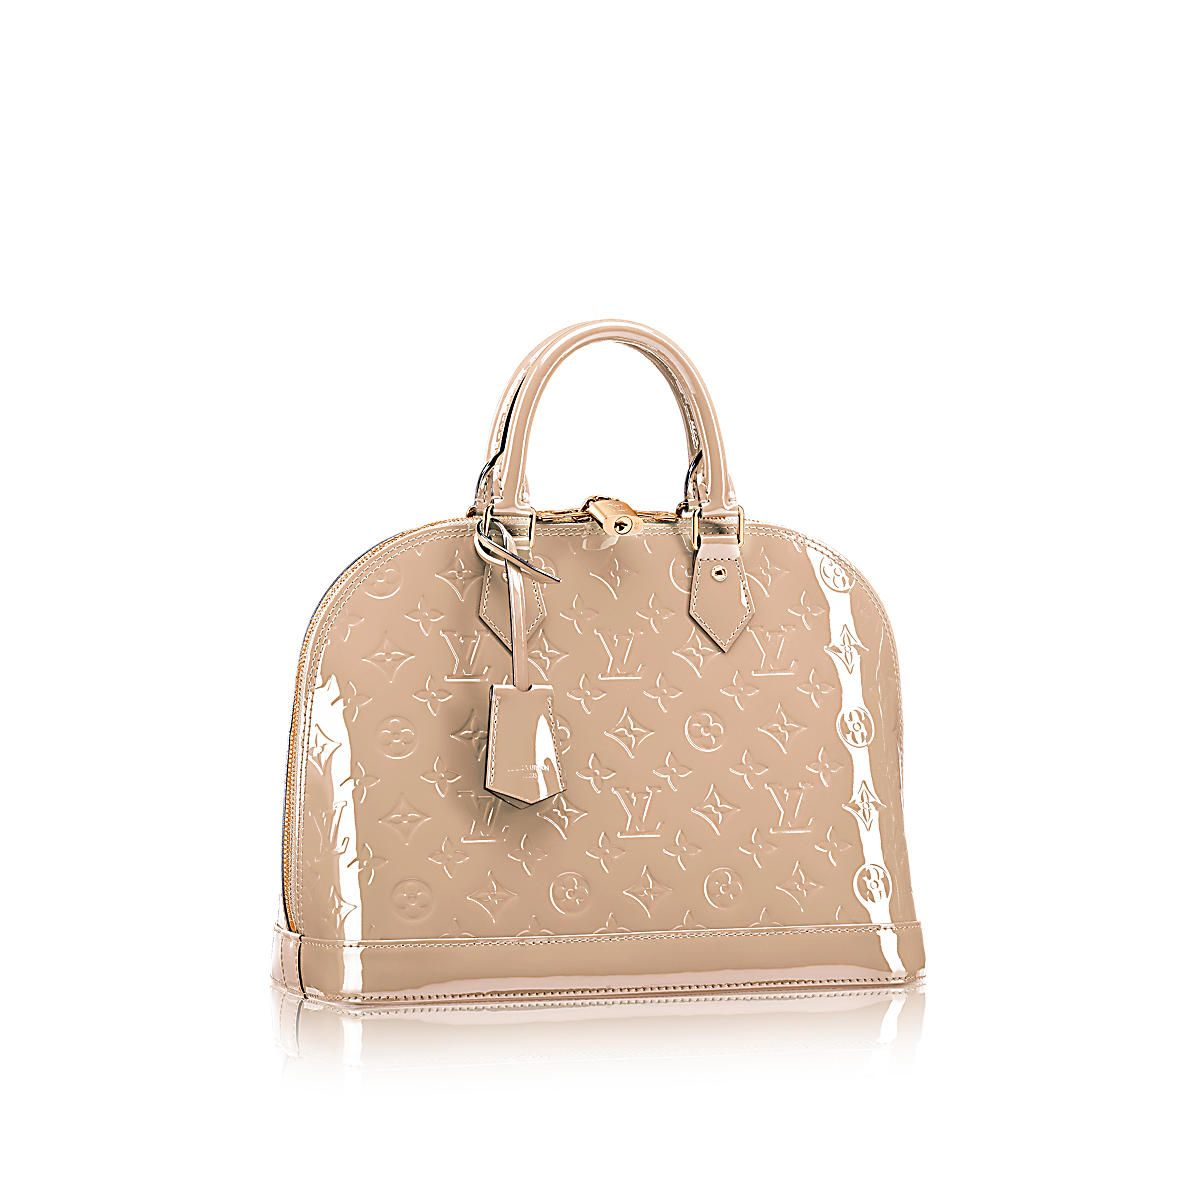 55eee3f06ff9 Discover Louis Vuitton Alma PM  The most structured of the iconic Louis  Vuitton handbags. The original was the creation of Gaston Vuitton